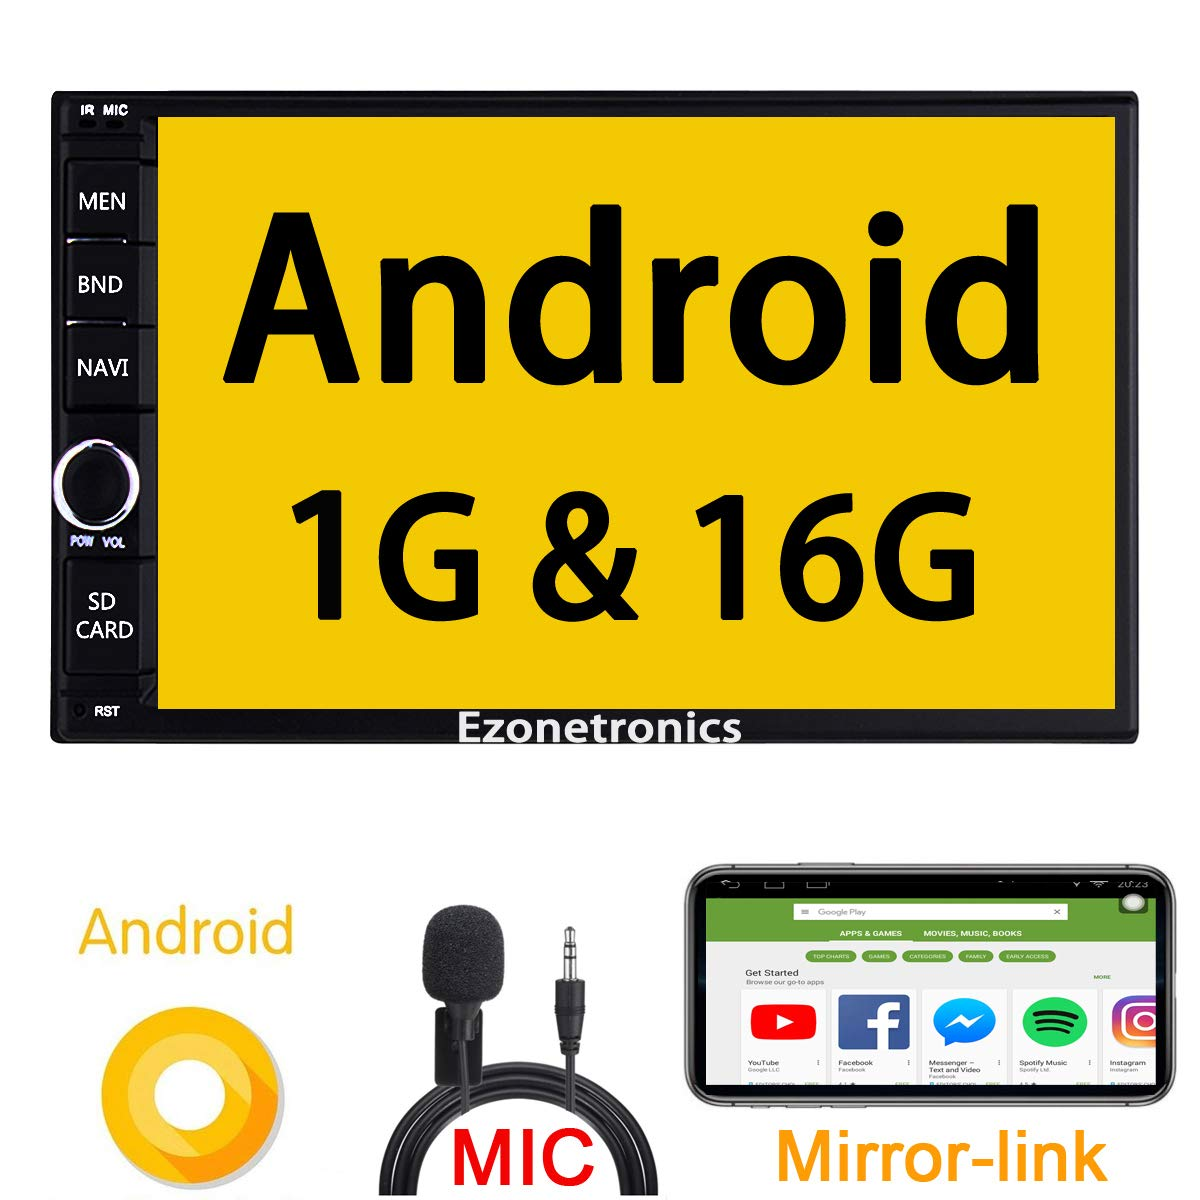 Double Din Android Car Stereo -7 inch Touch Screen inDash Car Radio Video Multimedia Player with Bluetooth WiFi GPS Navigation System Ezonetronics Rhythm Electronics Limited